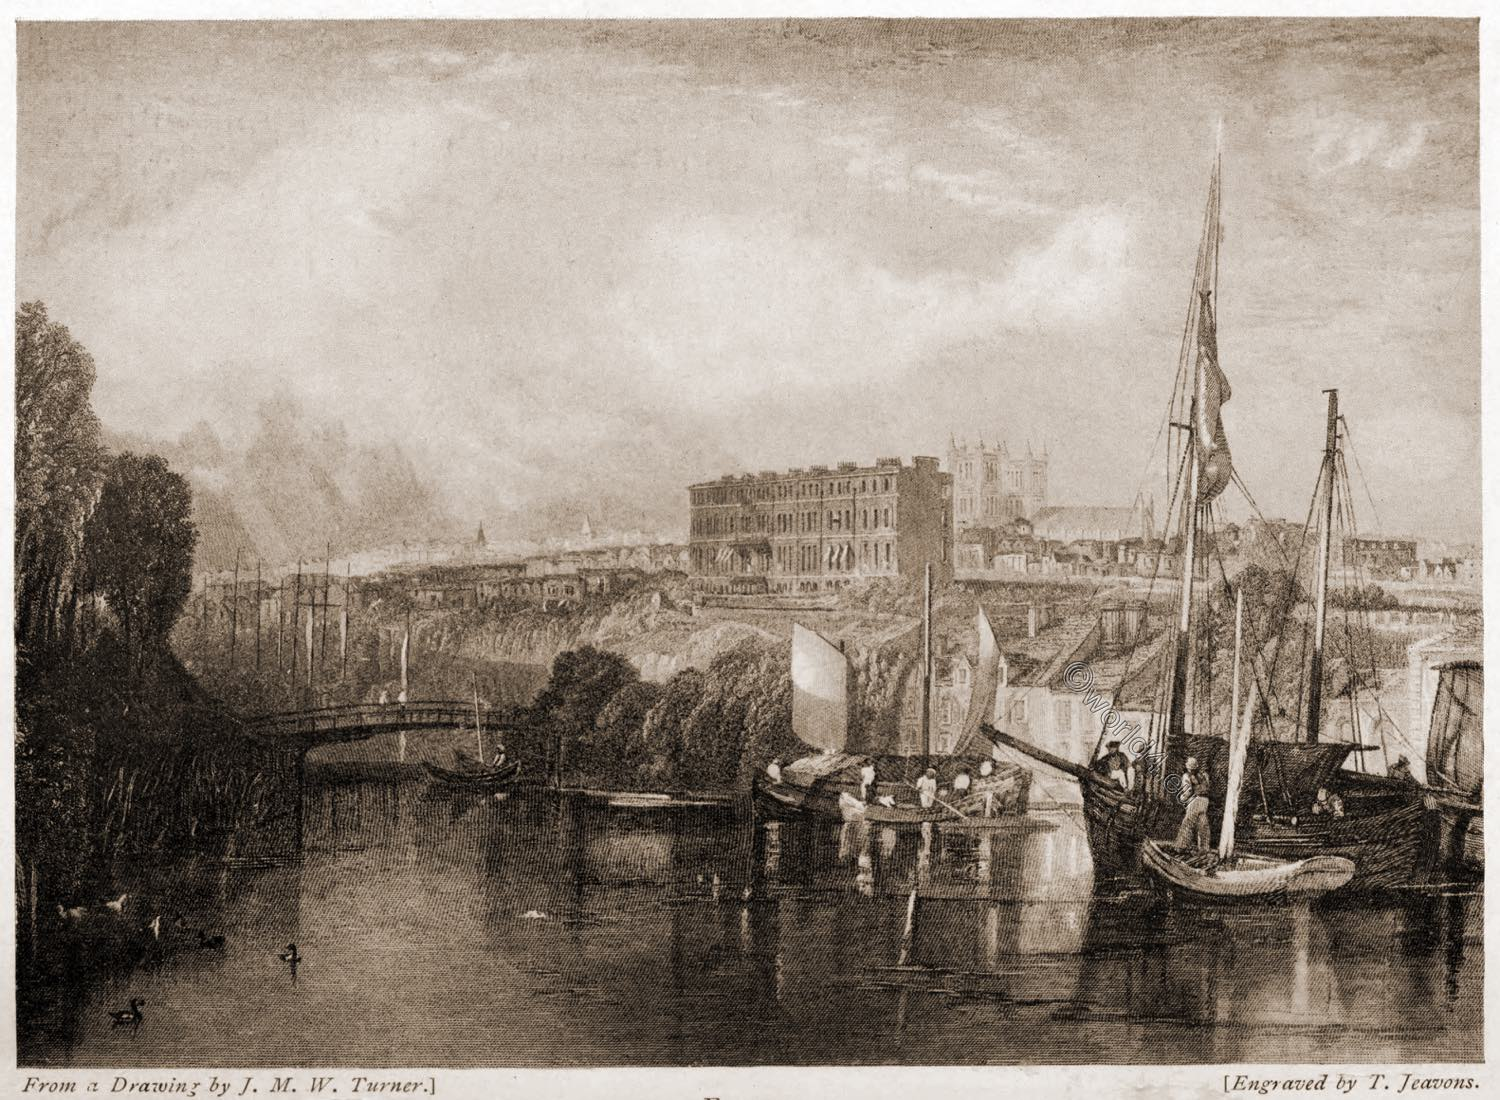 Exeter, Drawing, William Turner,  Engraver, Jeavons